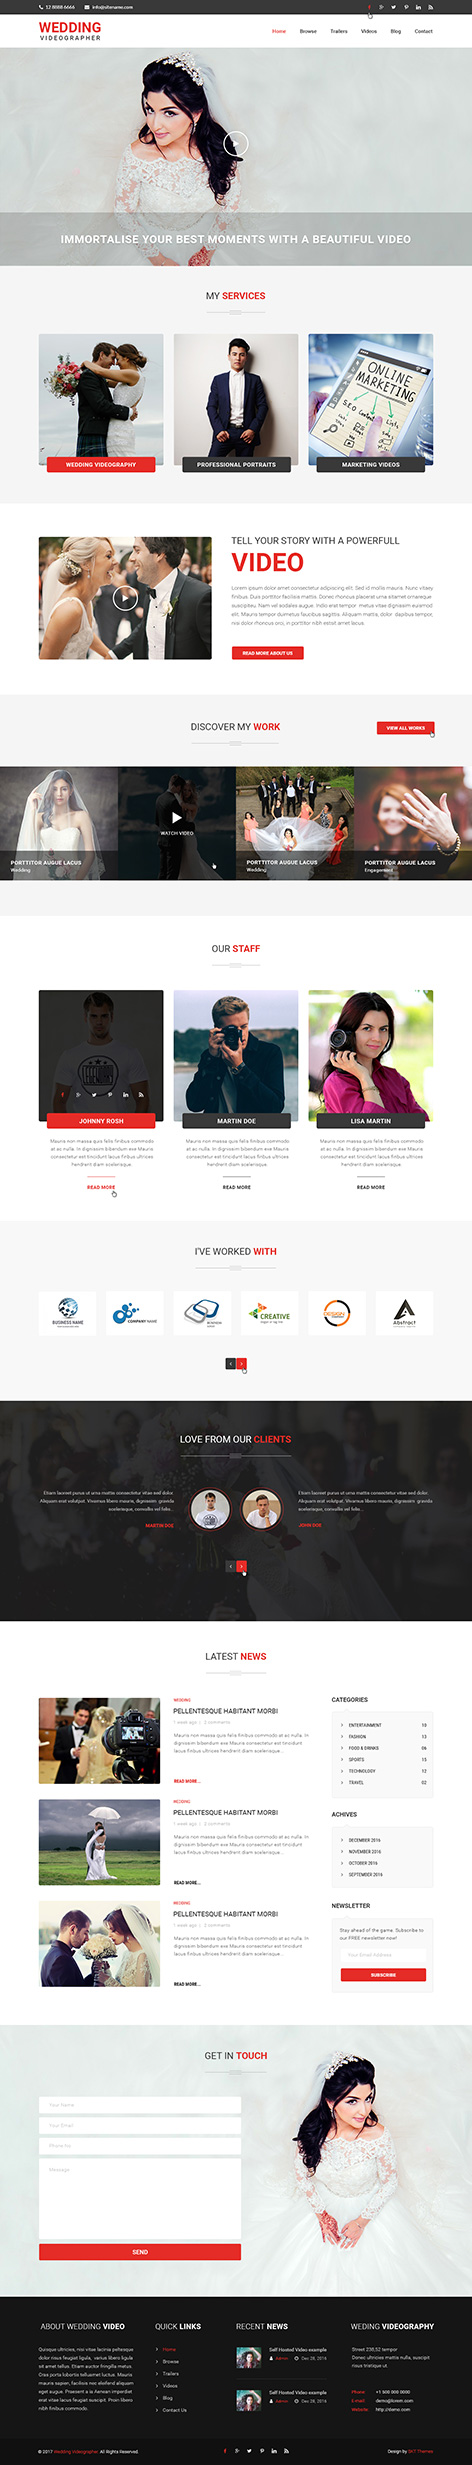 wedding videographer WordPress theme